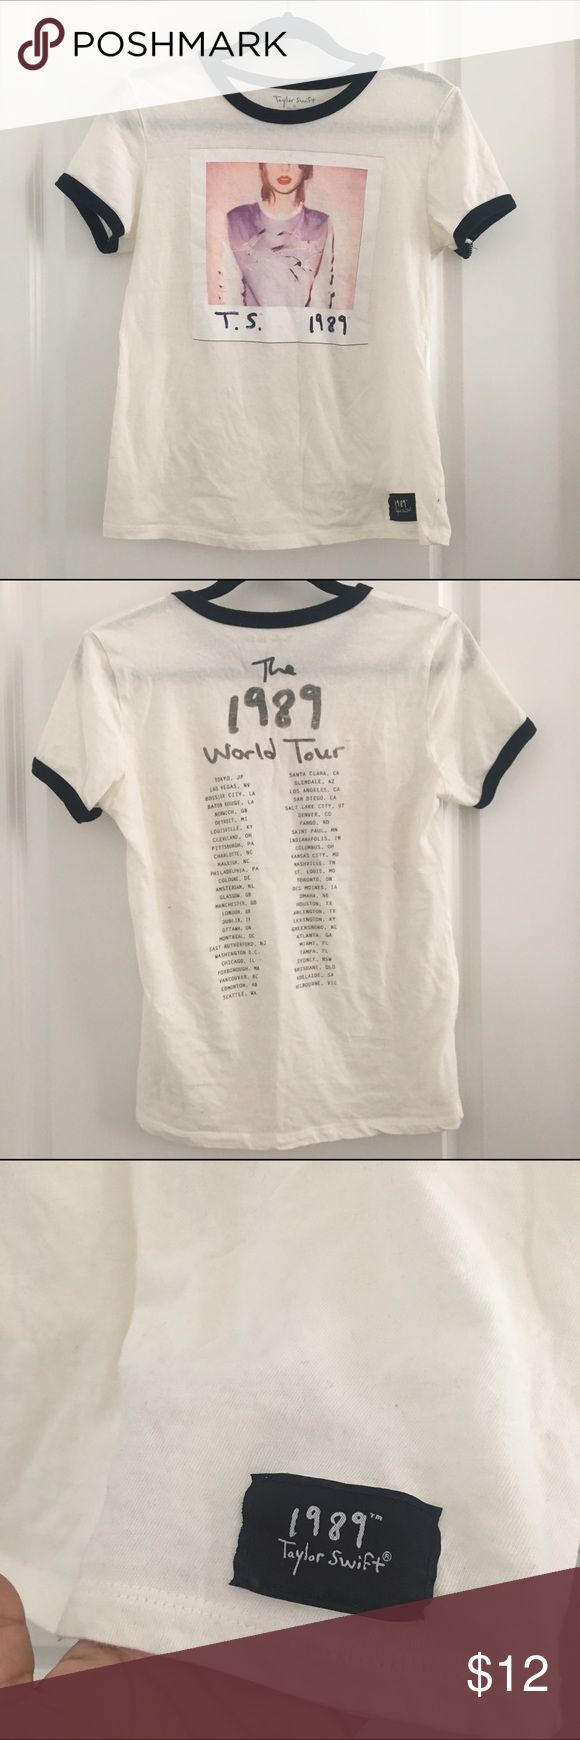 Taylor Swift Official Merchandise T-Shirt Worn once at a T-Swift concert. Official 1989 Tour merchandise. Size M fits true to size. Tops Tees - Short Sleeve